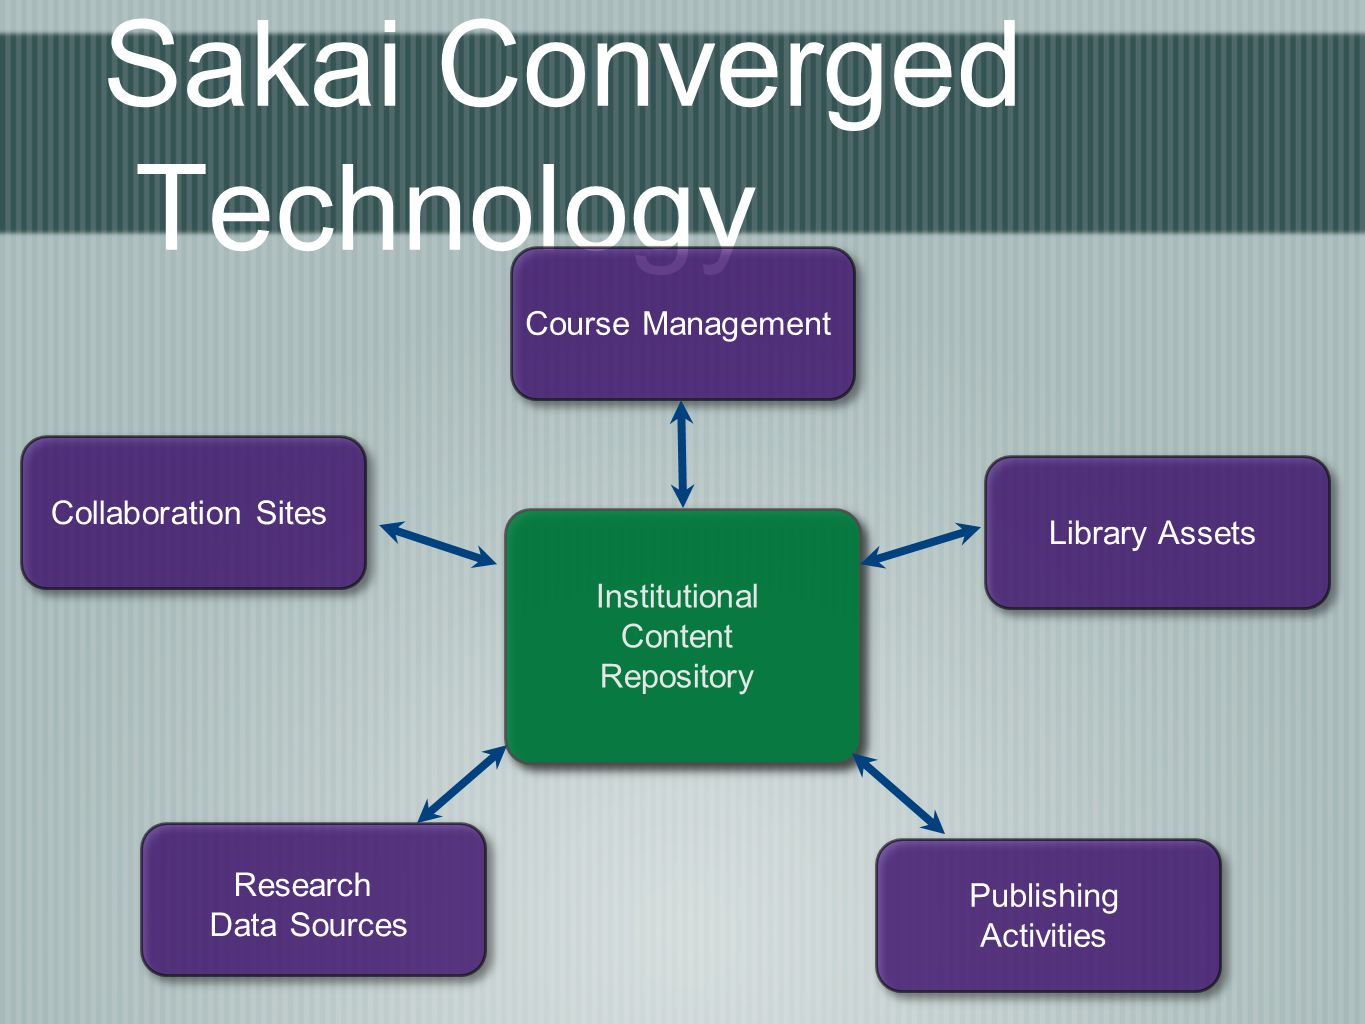 Sakai Converged Technology Research Data Sources Institutional Content Repository Publishing Activities Library Assets Course Management Collaboration Sites